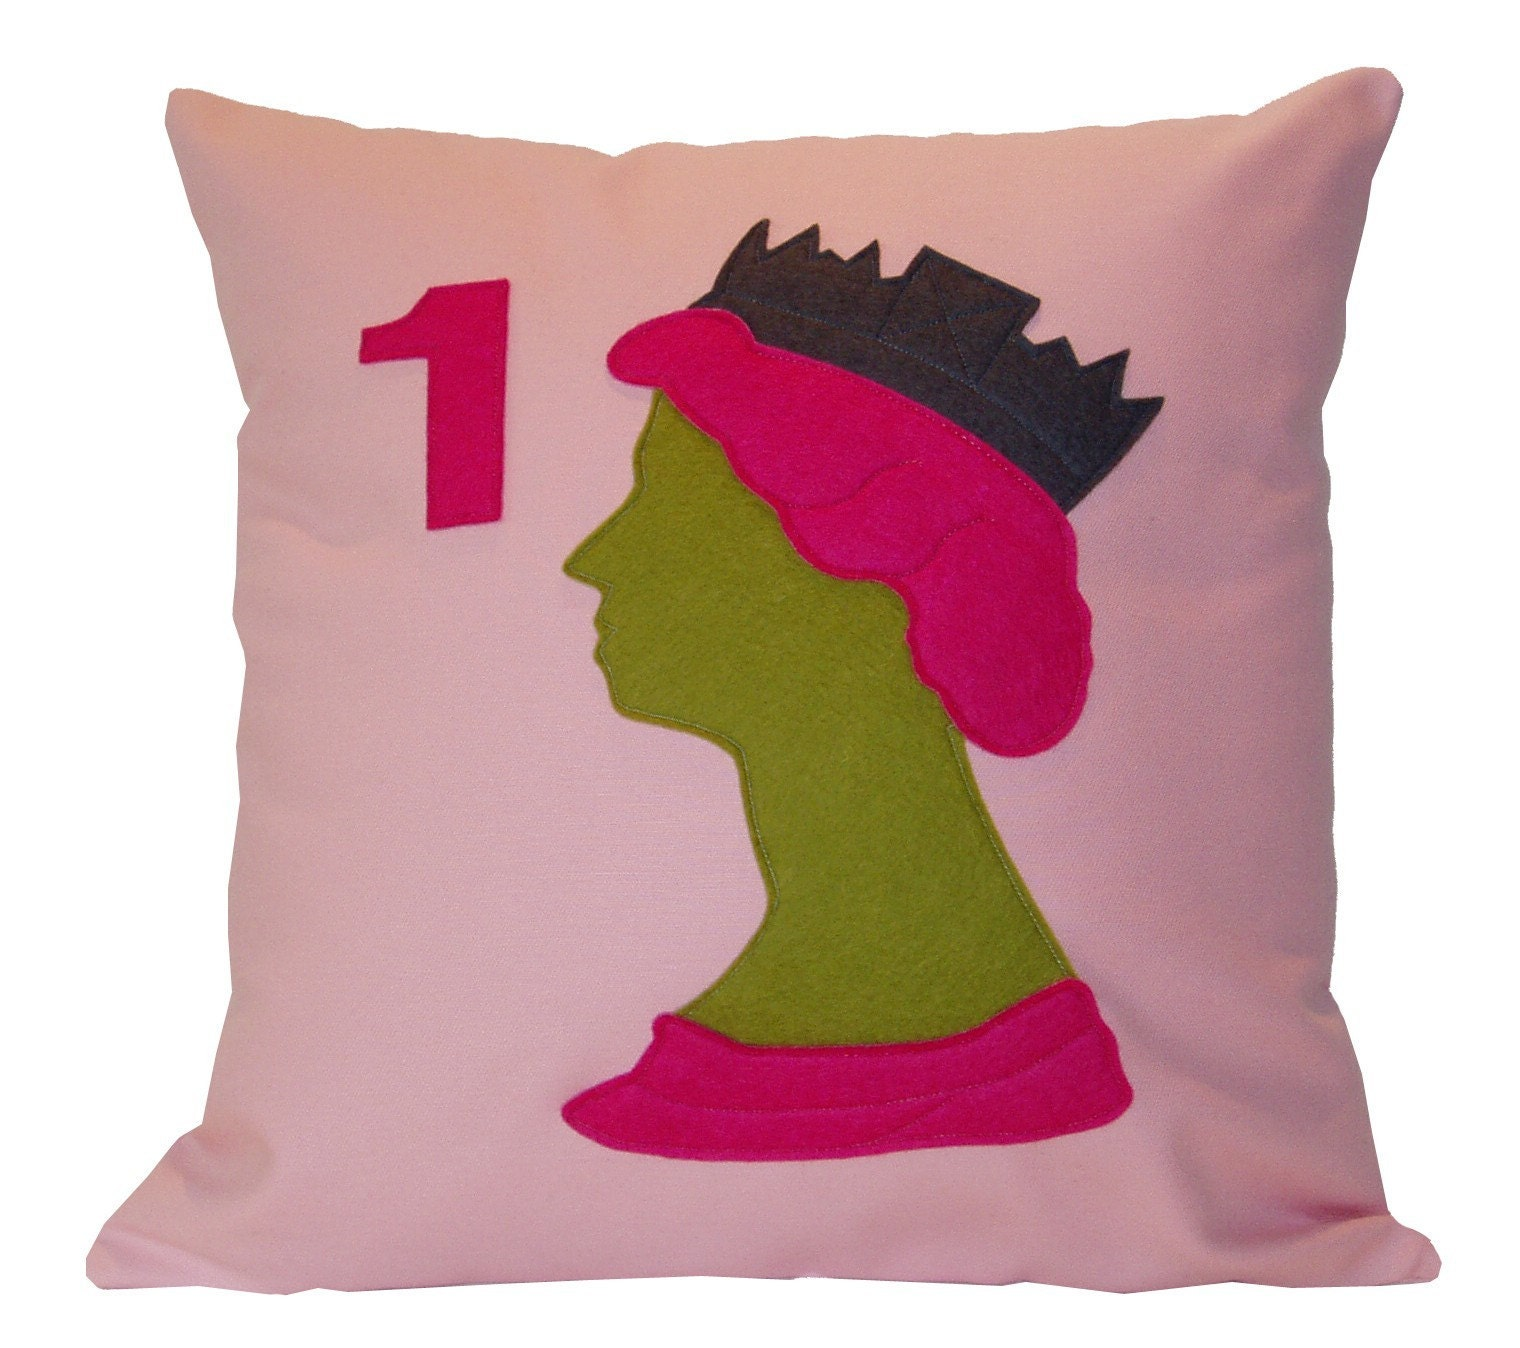 PINK QUEEN ELIZABETH II STAMP CUSHION/PILLOW